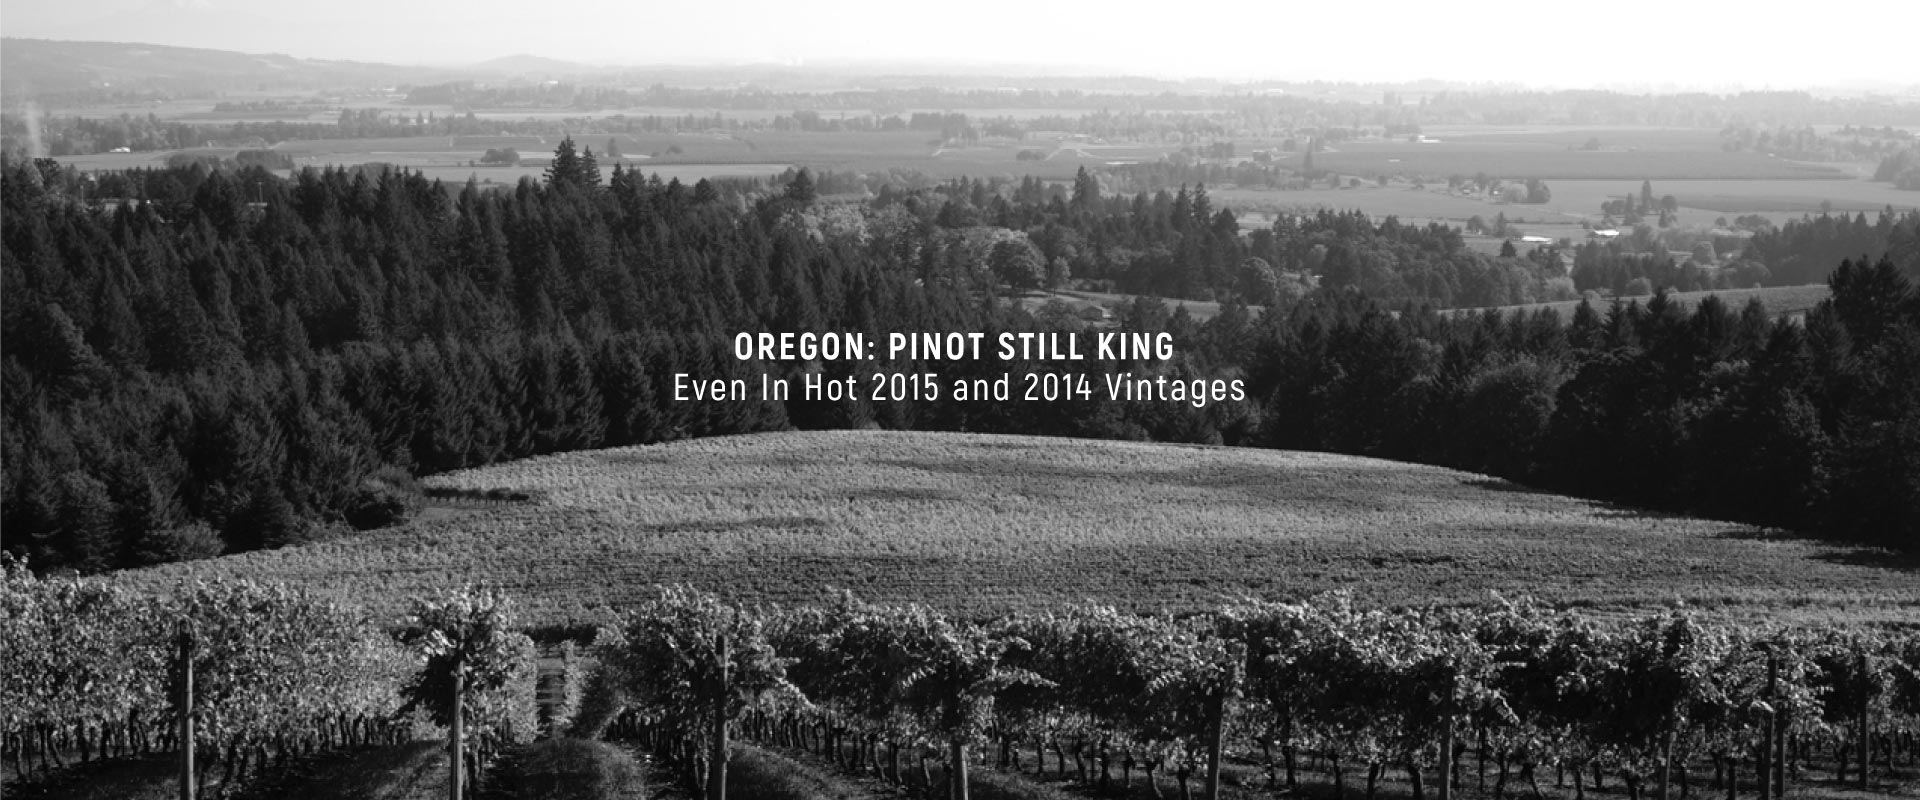 Can not ratings pinot noir vintage oregon opinion you